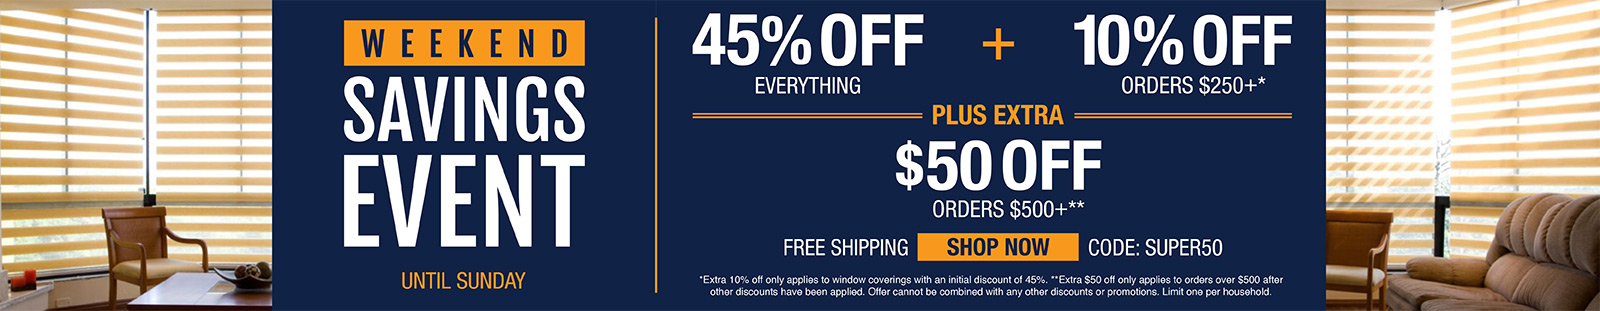 45% off everything + 10% off orders $250+ plus extra 50$ off orders $500+